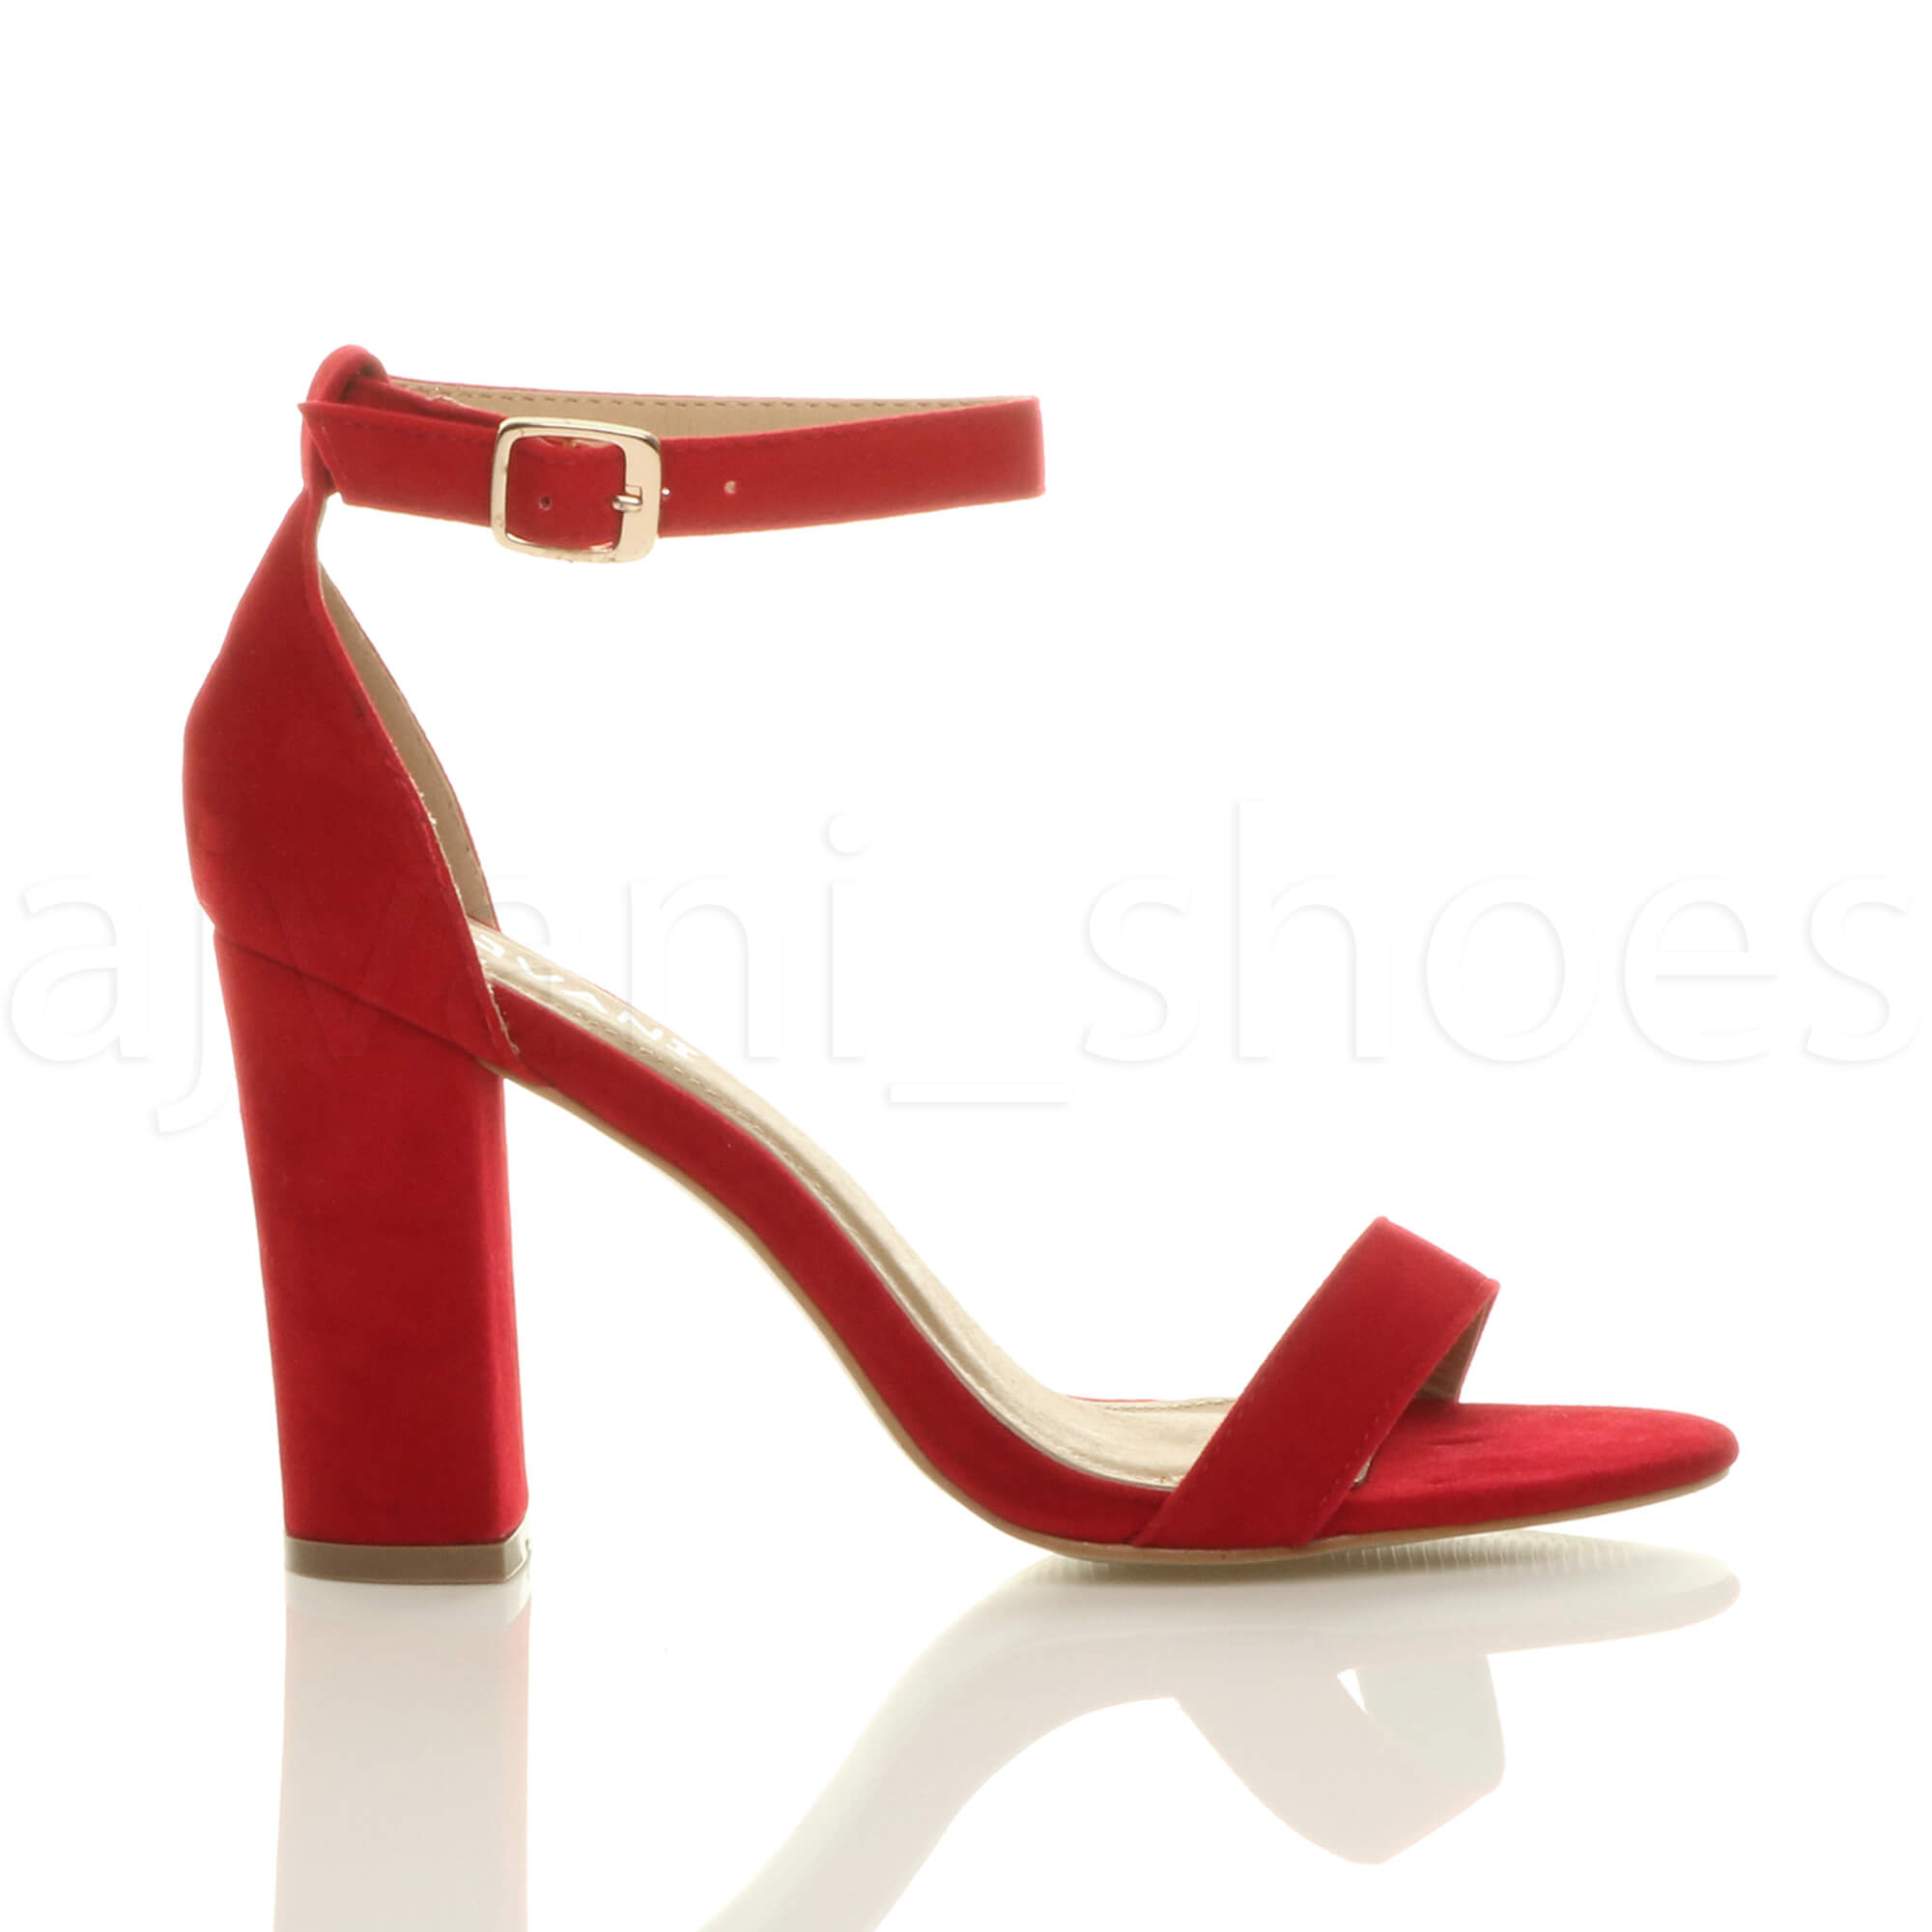 WOMENS-LADIES-BLOCK-HIGH-HEEL-ANKLE-STRAP-PEEP-TOE-STRAPPY-SANDALS-SHOES-SIZE thumbnail 117